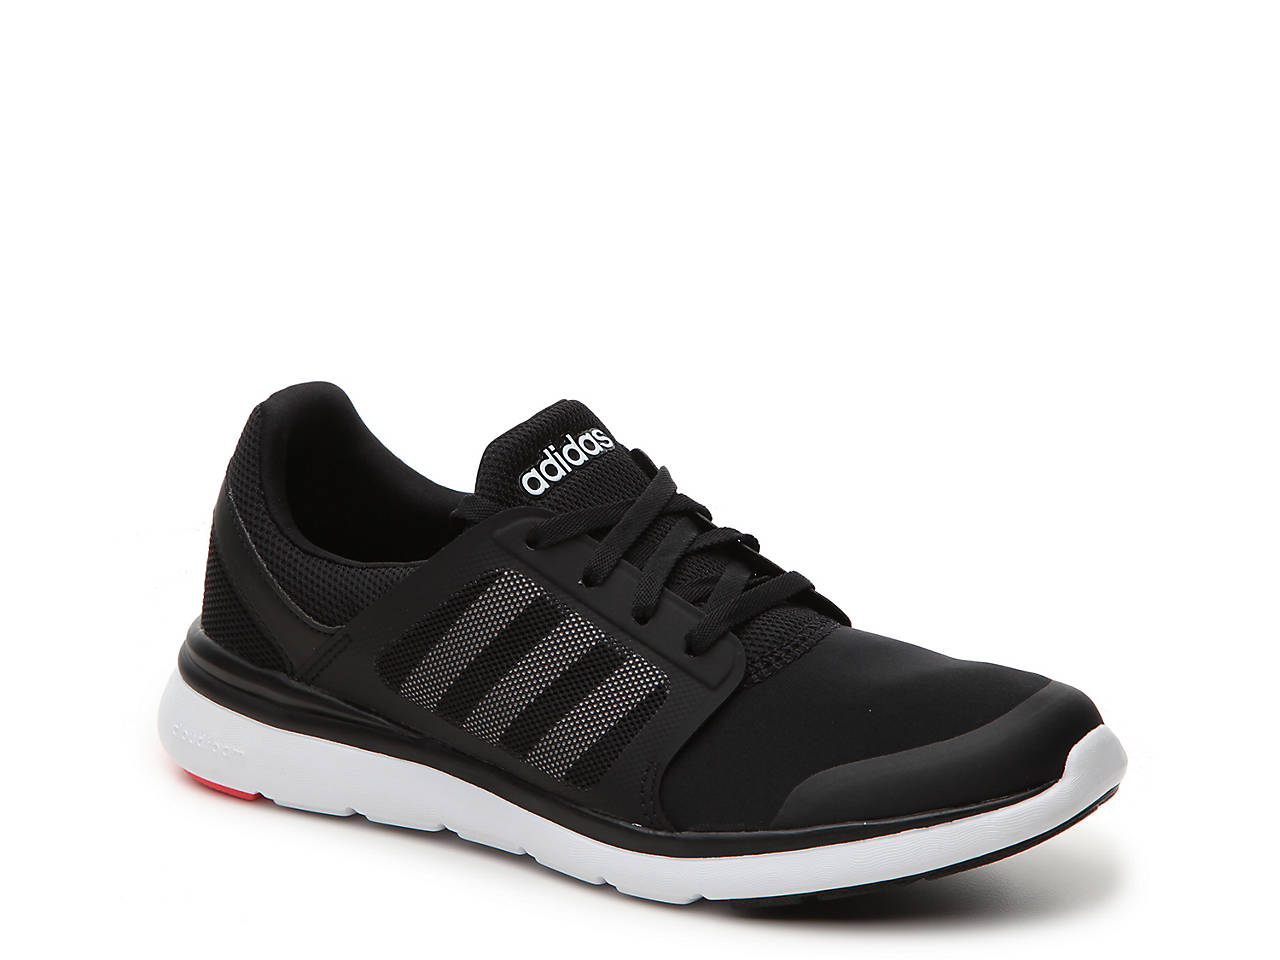 adidas cloudfoam women's running shoes